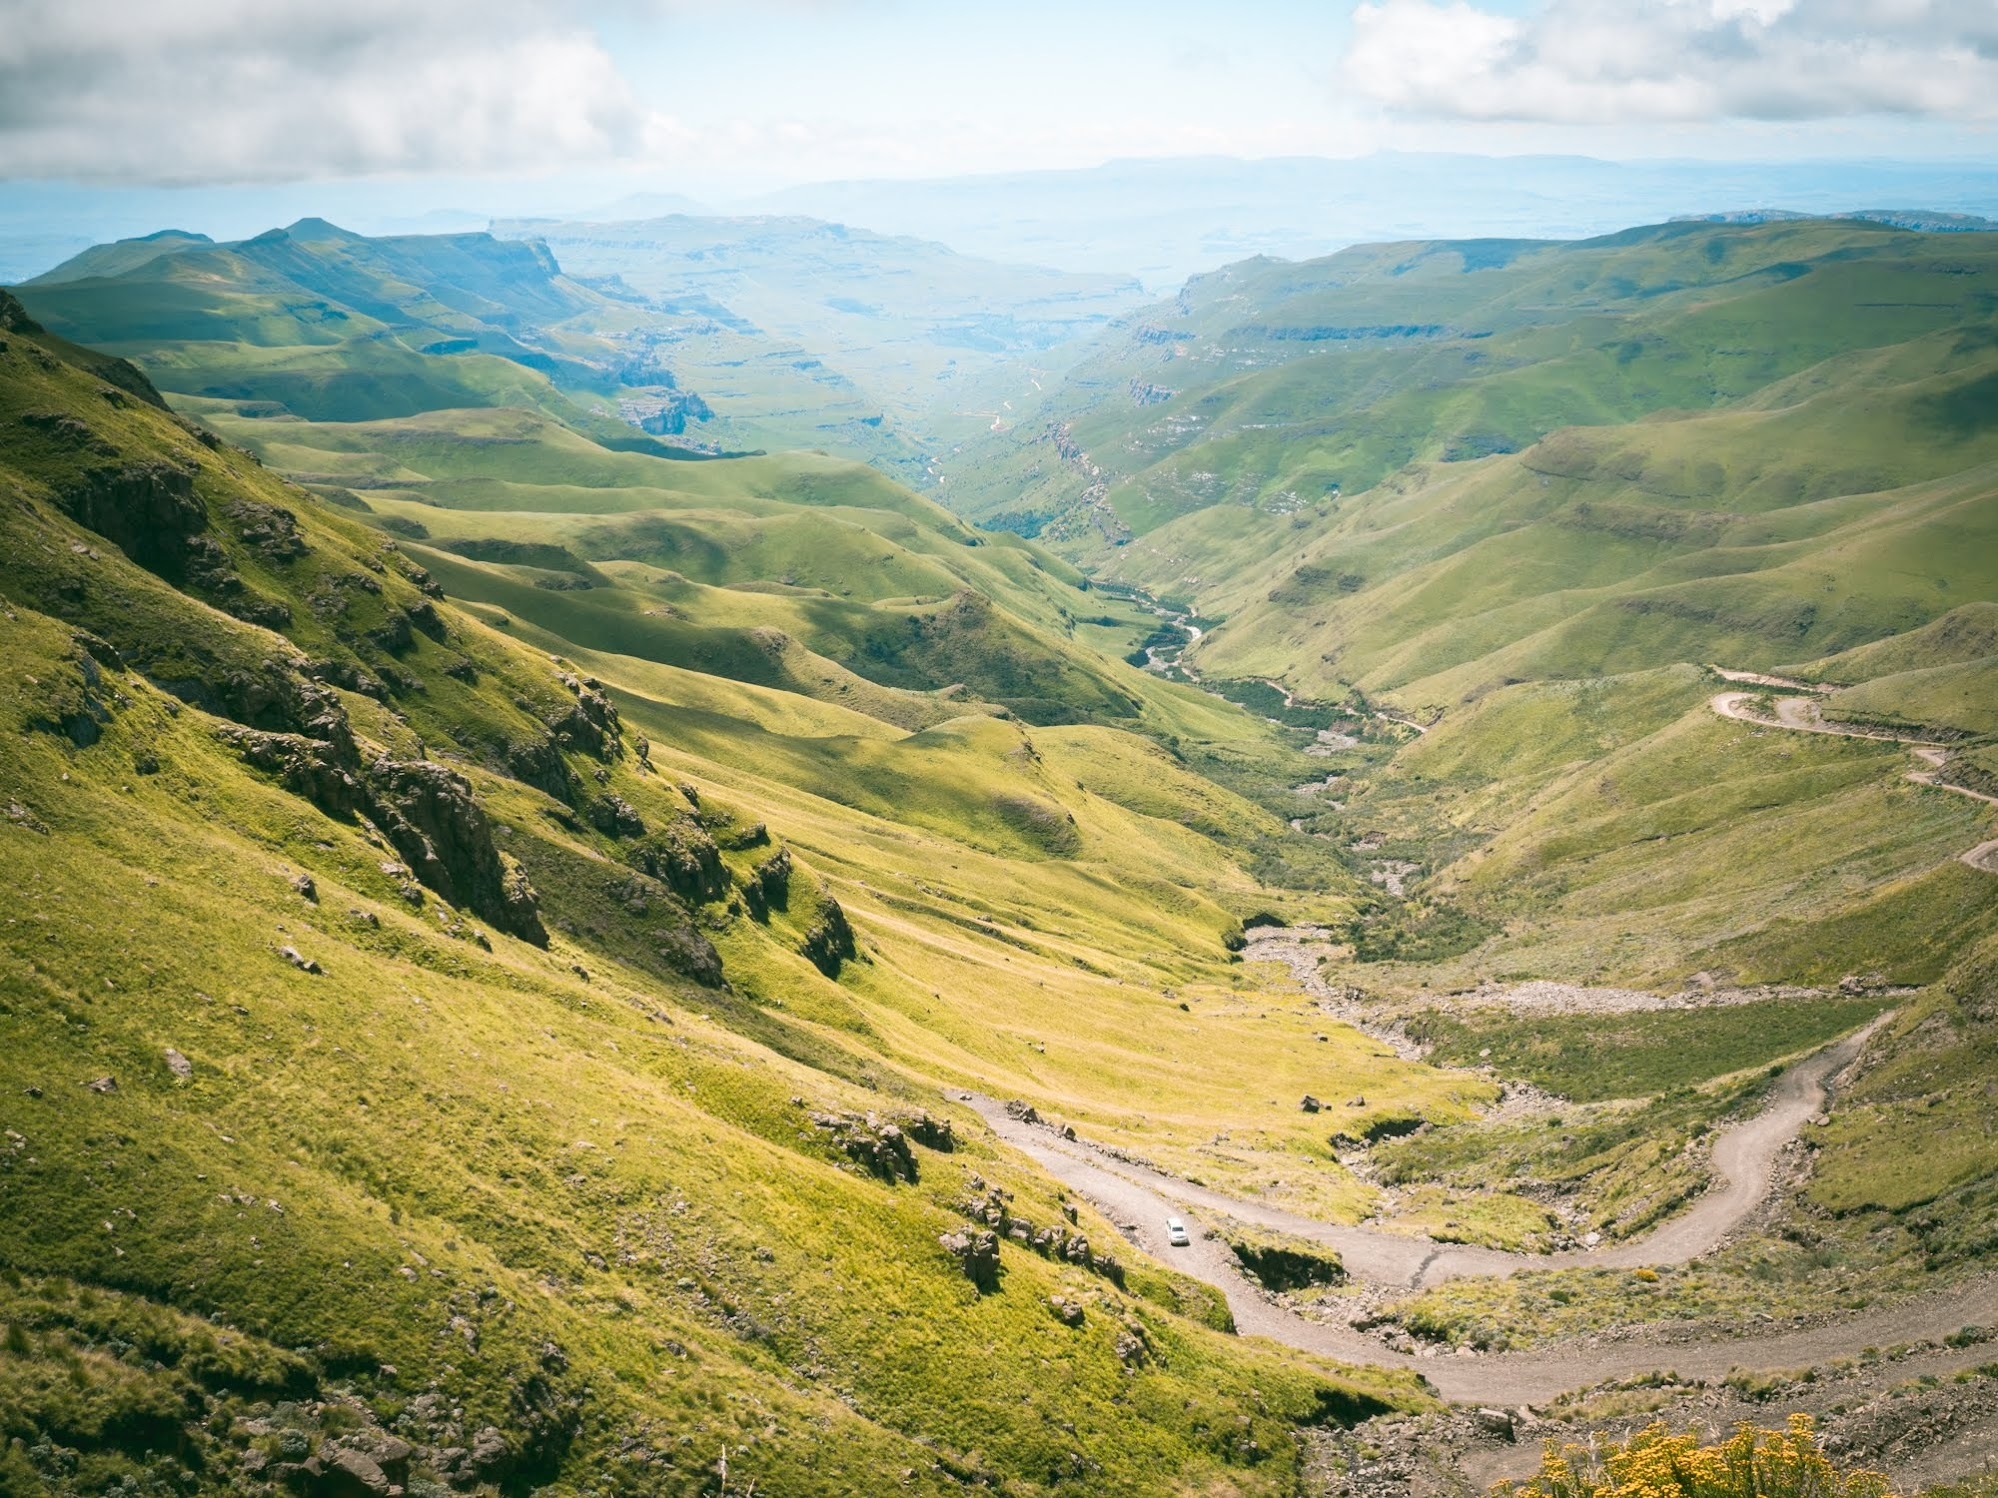 The twisty road up Sani Pass, this is South Africa side.